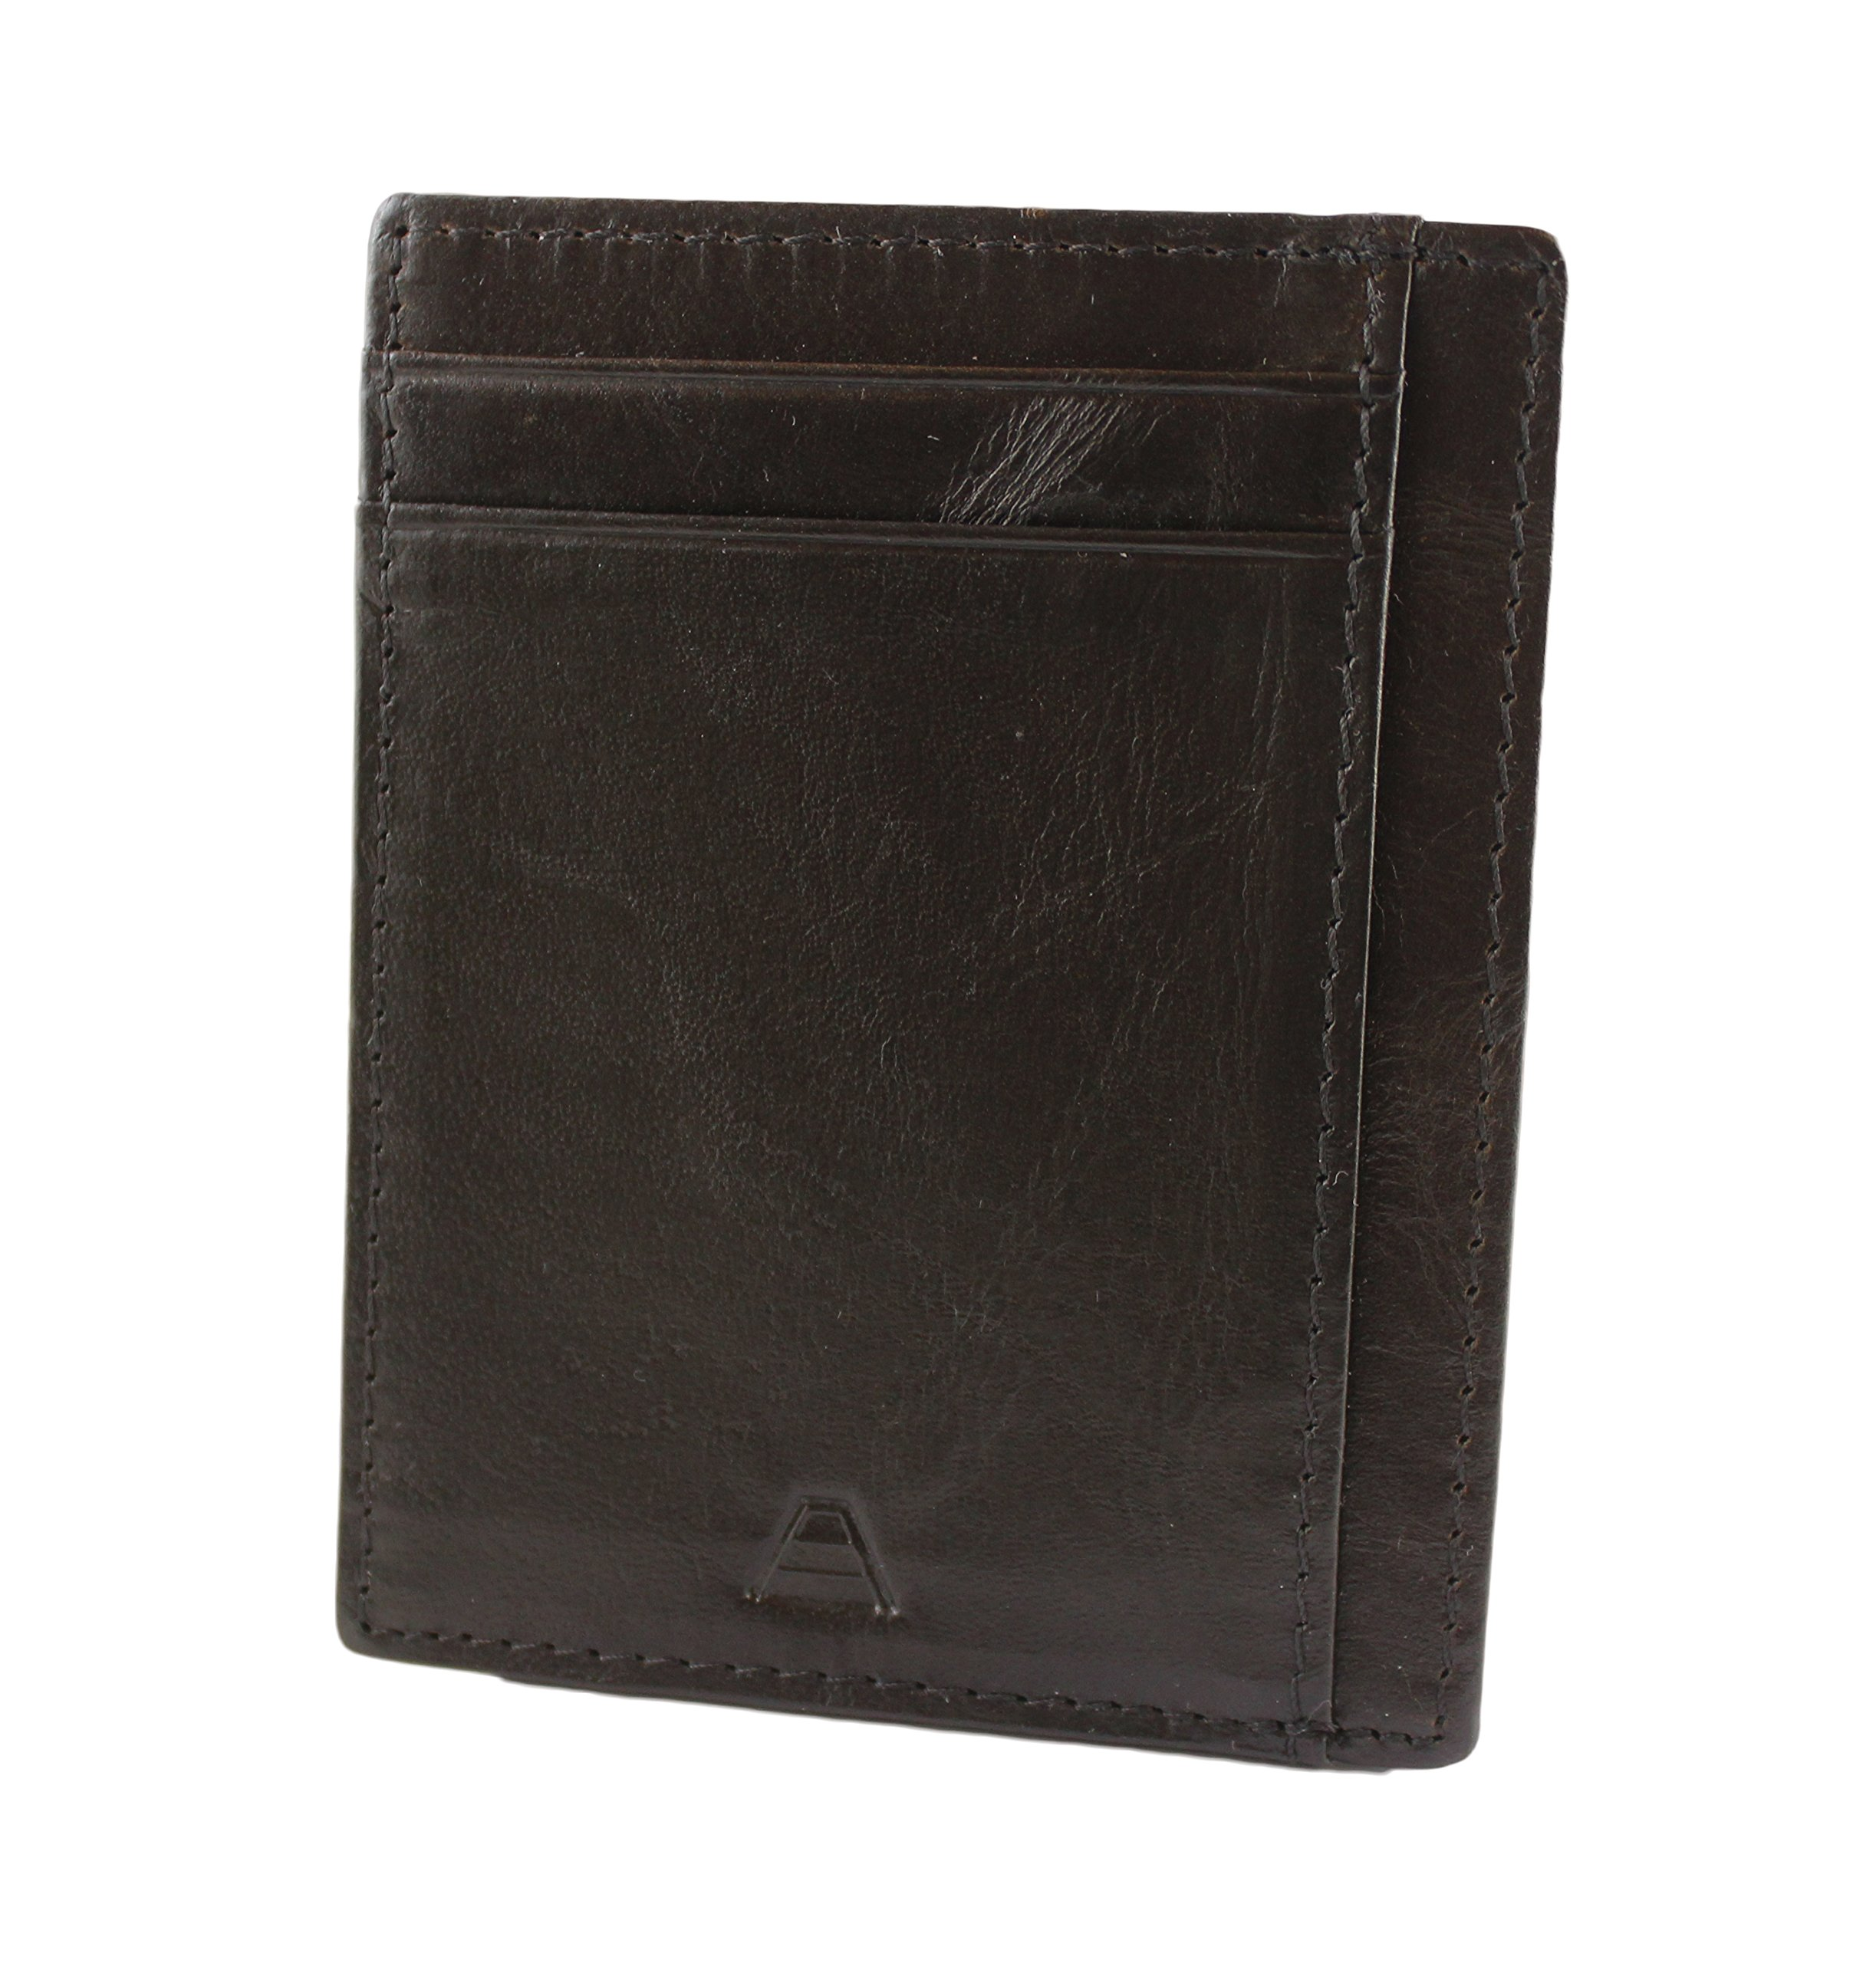 Andar RFID Minimalist Front Pocket Wallet - Made of Classy Full Grain Leather (Black) by Andar (Image #4)